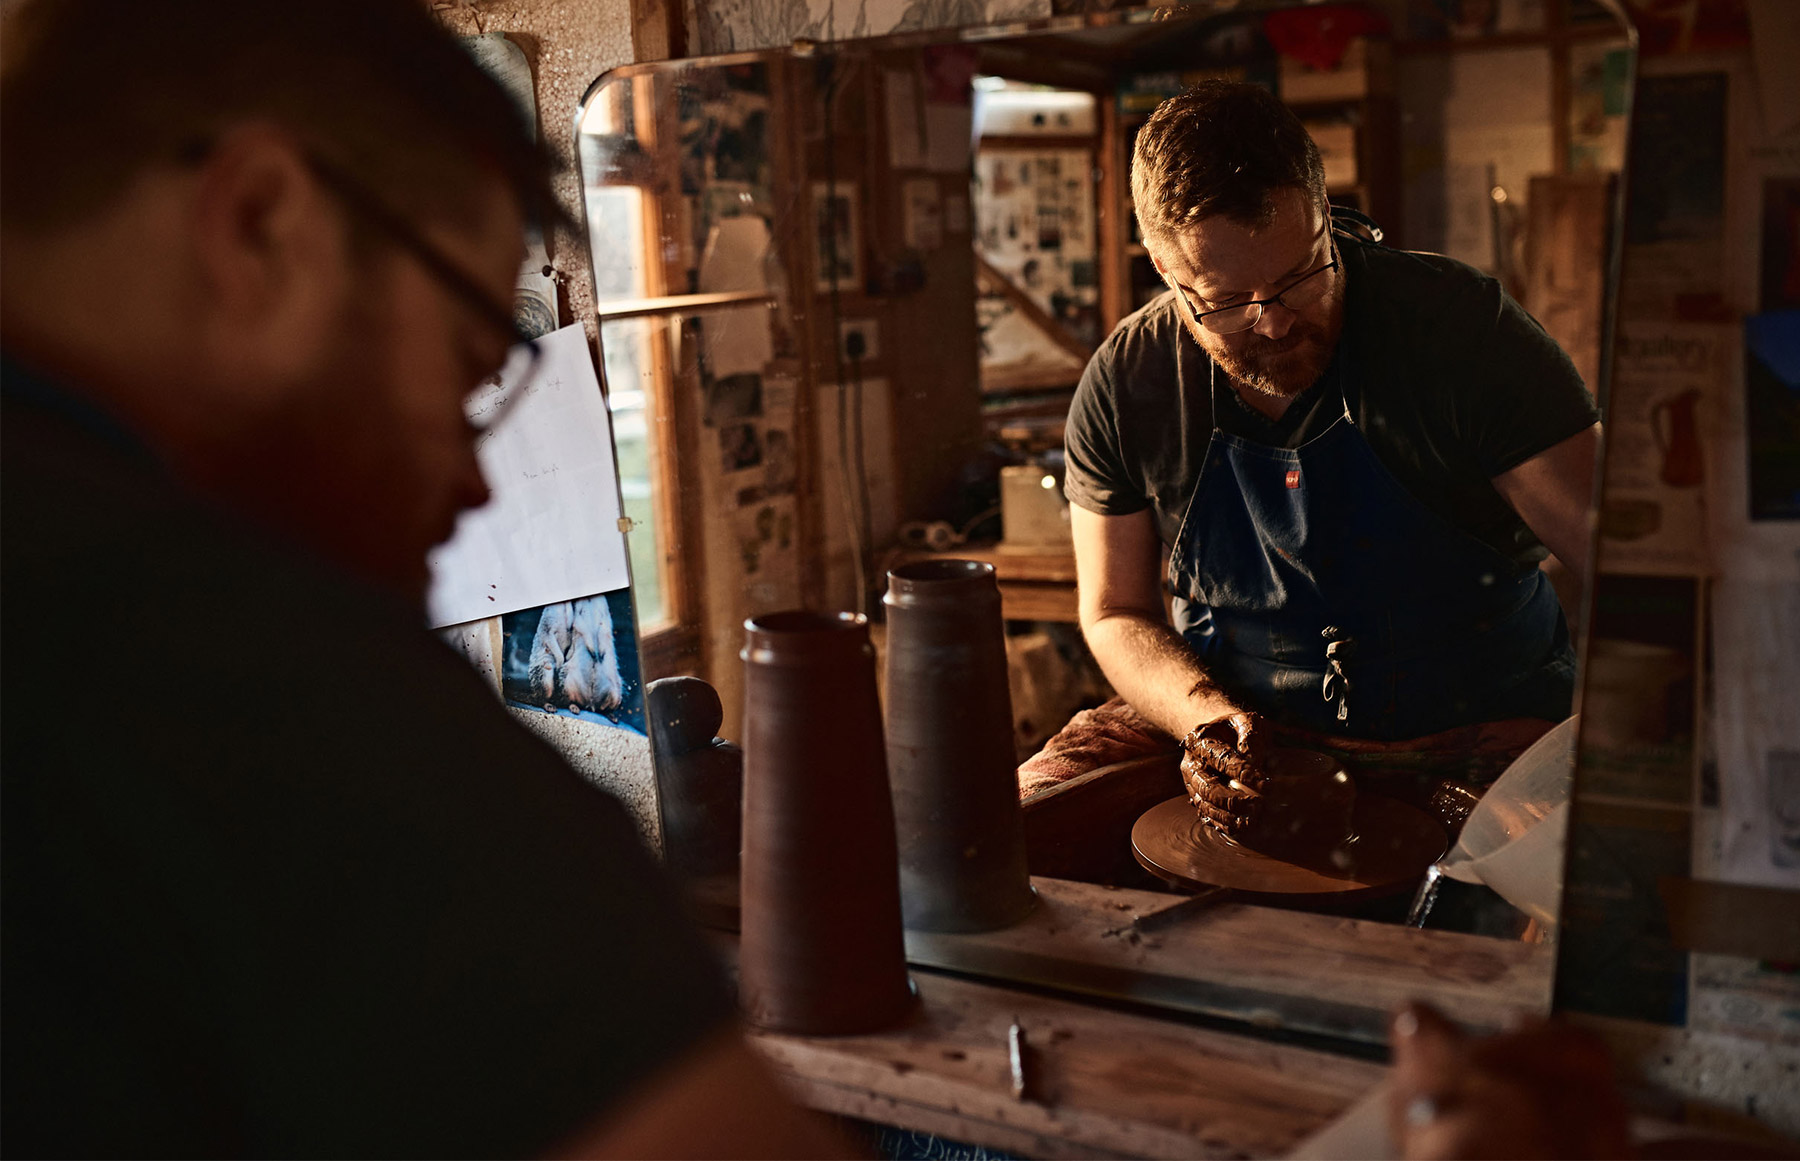 Neville Tatham creating a jug on the wheel in his studio